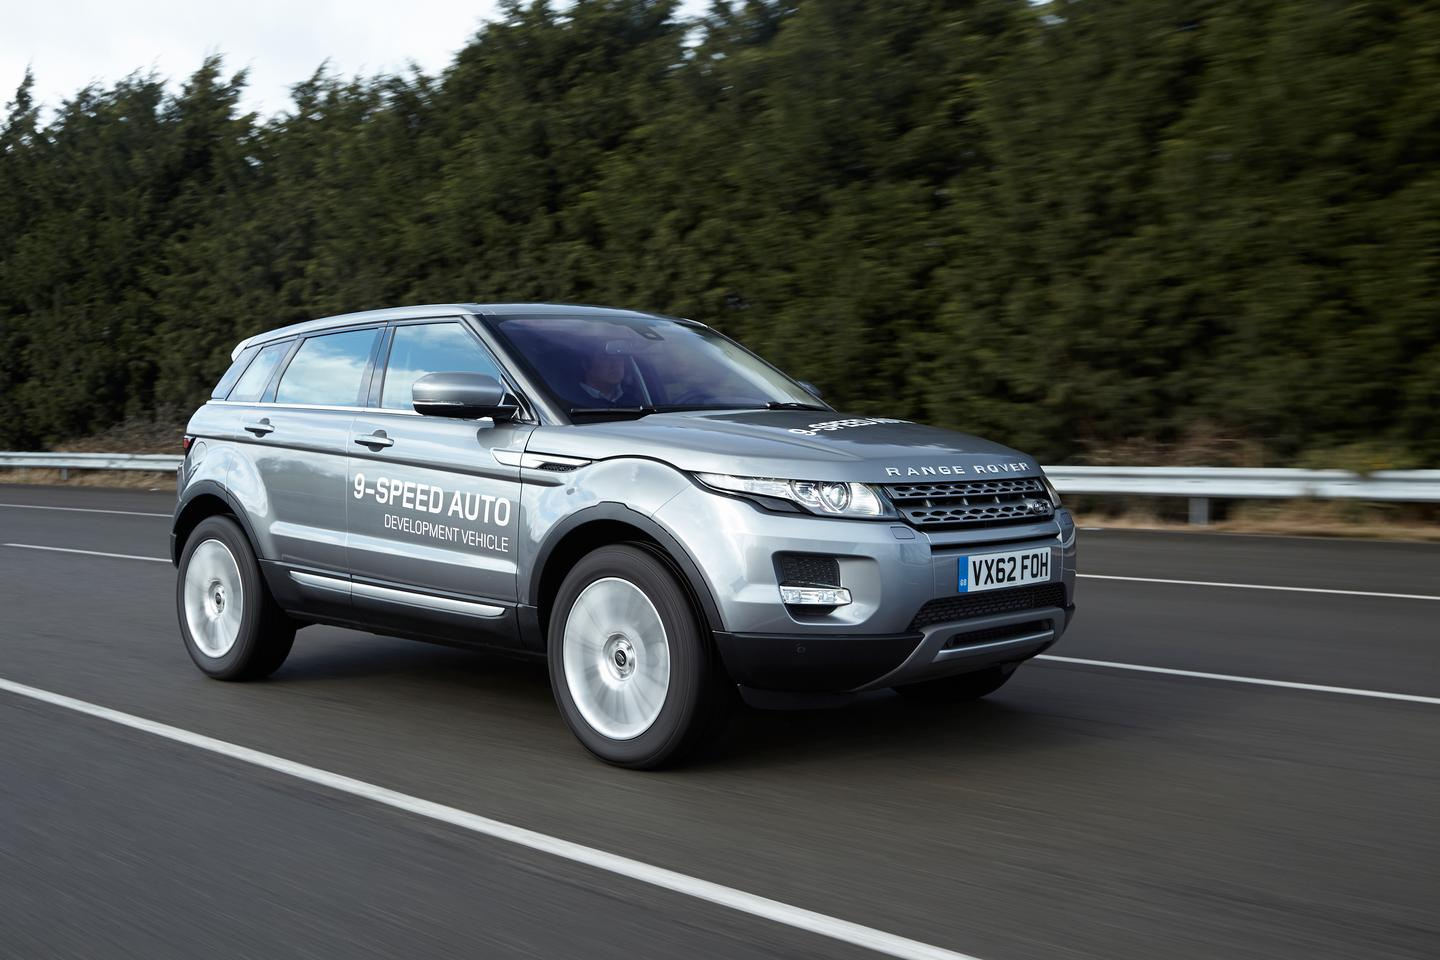 The Range Rover Evoque, with the world's first 9-speed gearbox